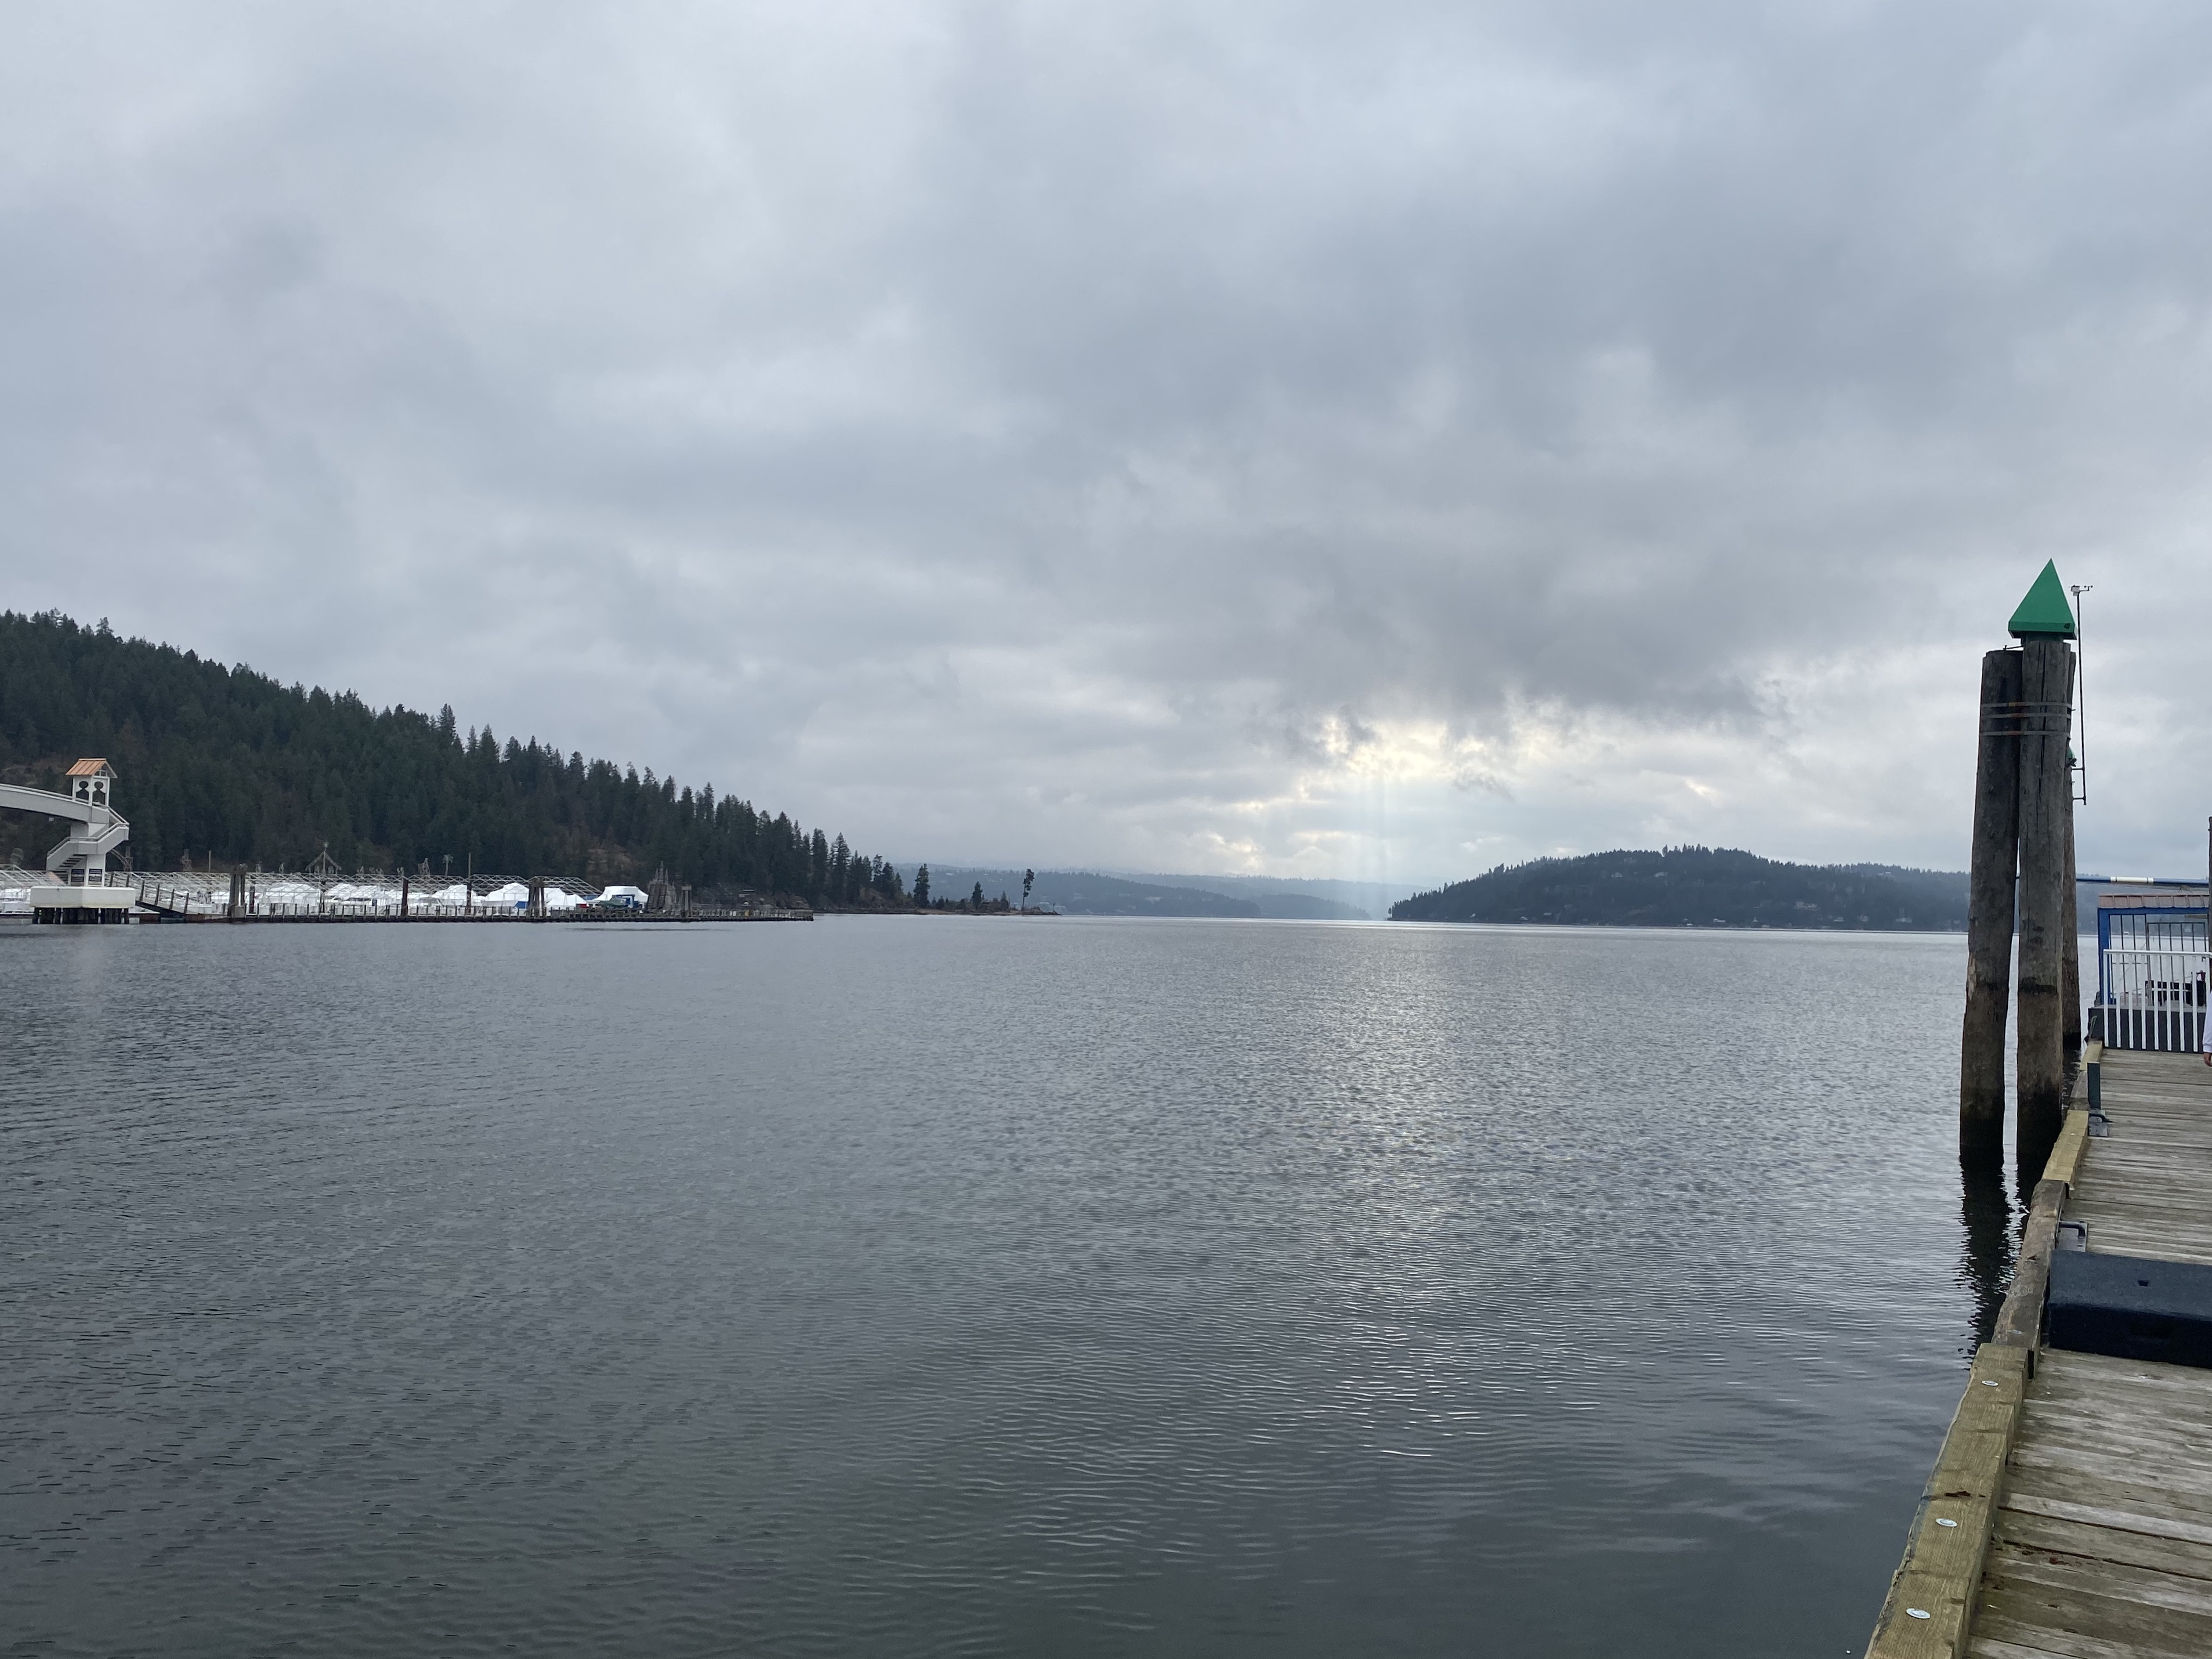 6 Reasons To Vacation In Coeur D'Alene, Idaho